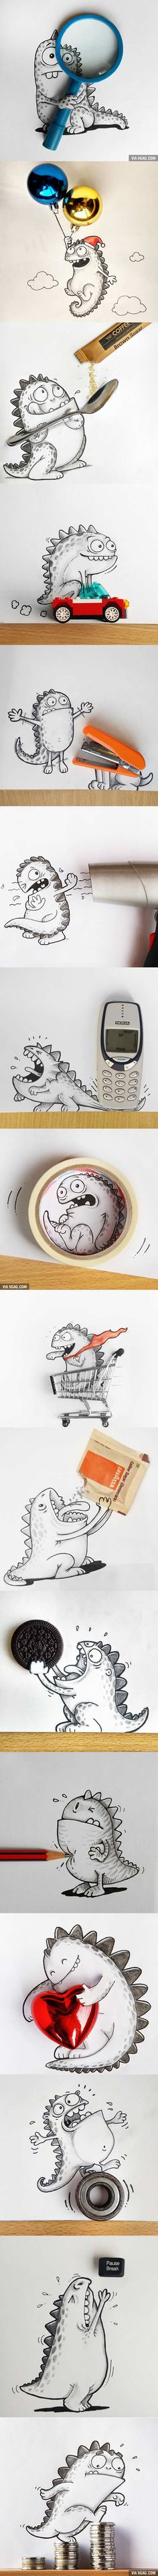 This Cartoon Dragon Loves Playing With Everyday Objects (By Manik & Ratan)